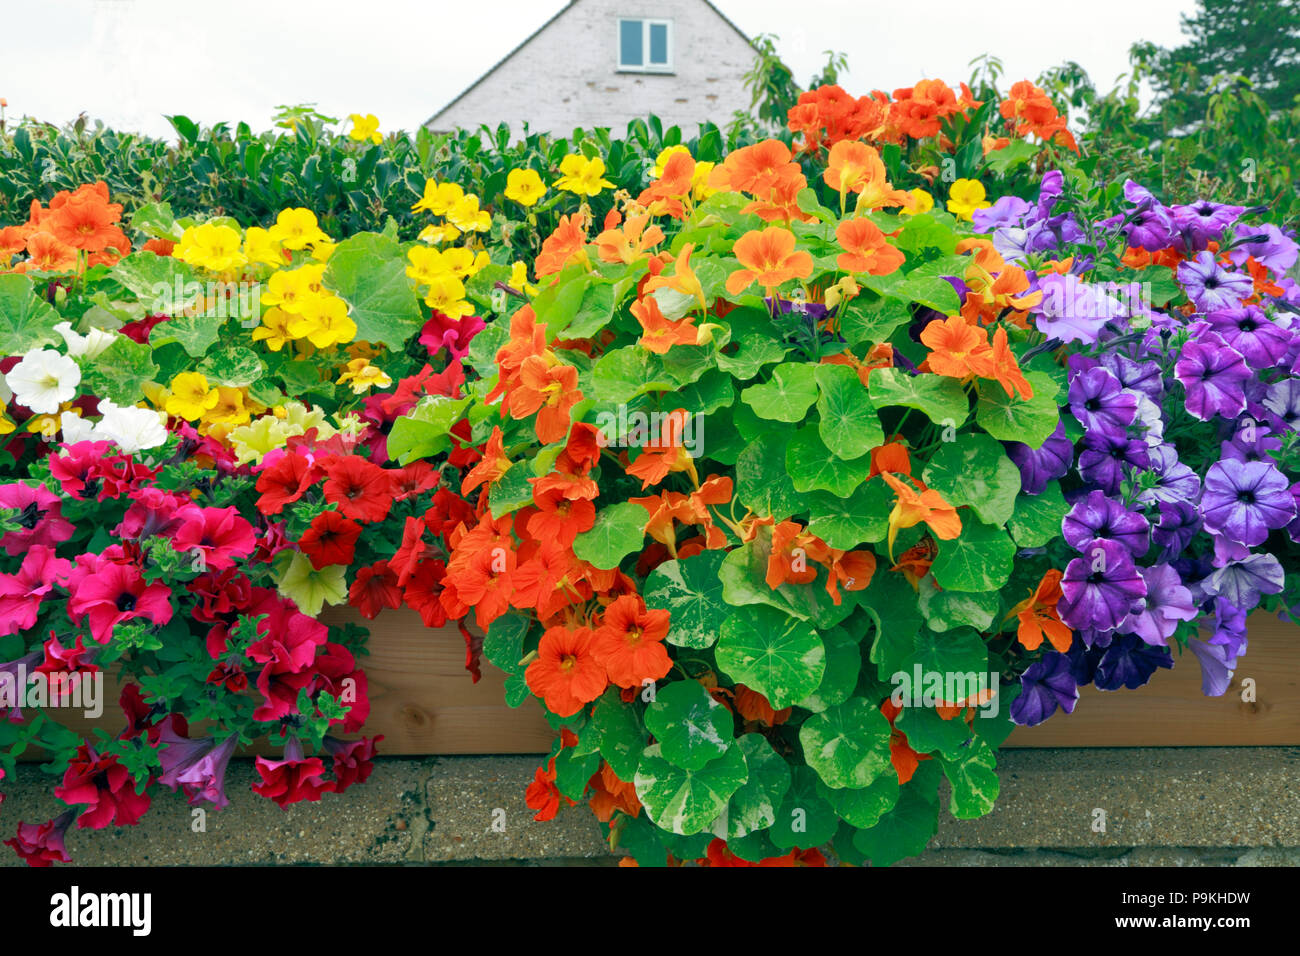 Petunias on wall, red, orange, yellow, white, purple, pink, various colours - Stock Image